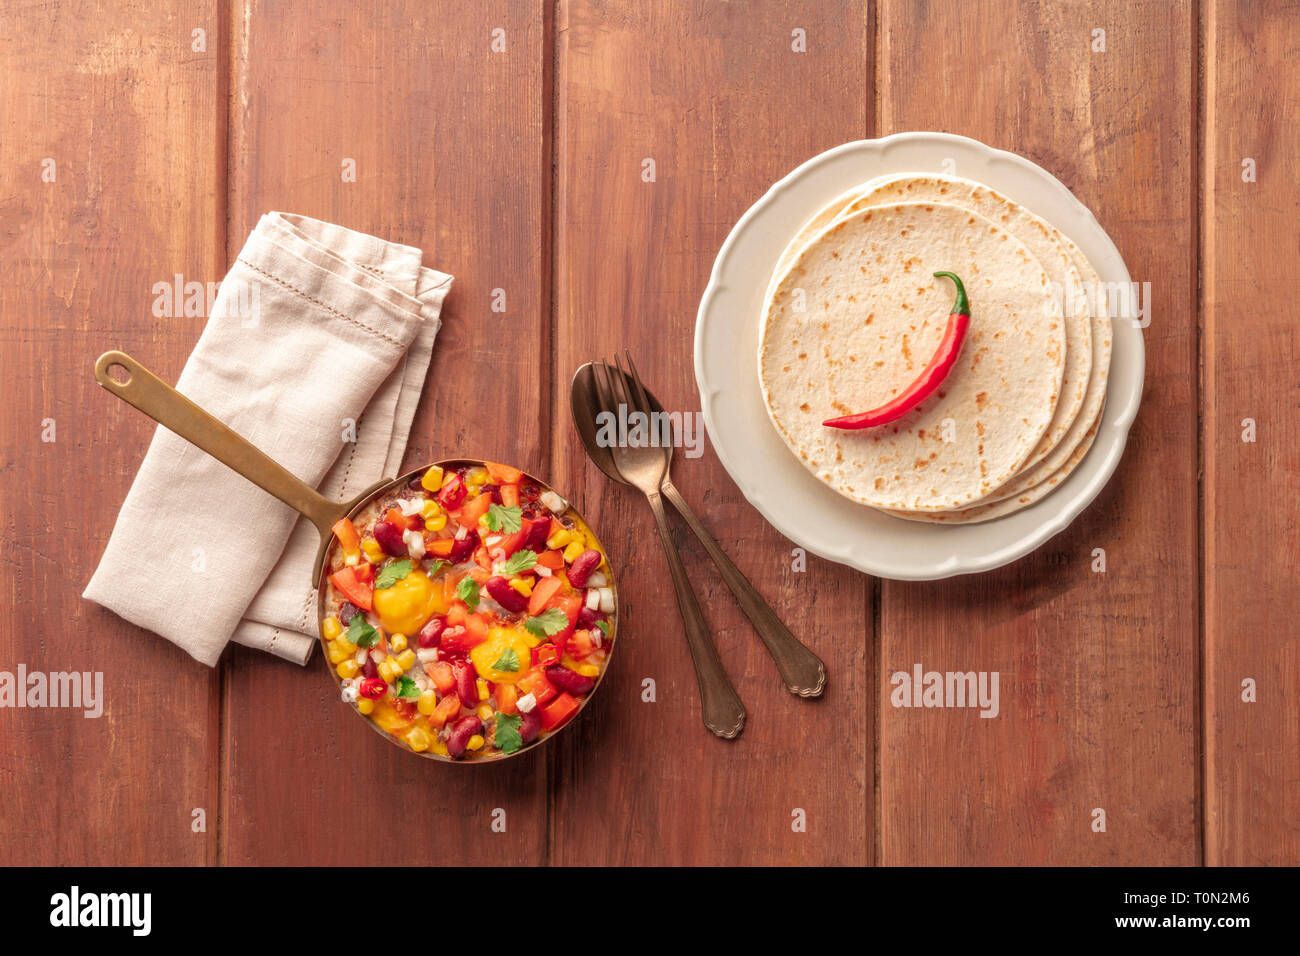 Mexican breakfast. Huevos rancheros, baked eggs, shot from the top with pico de gallo salad, and tortillas on a dark rustic wooden background - Stock Image